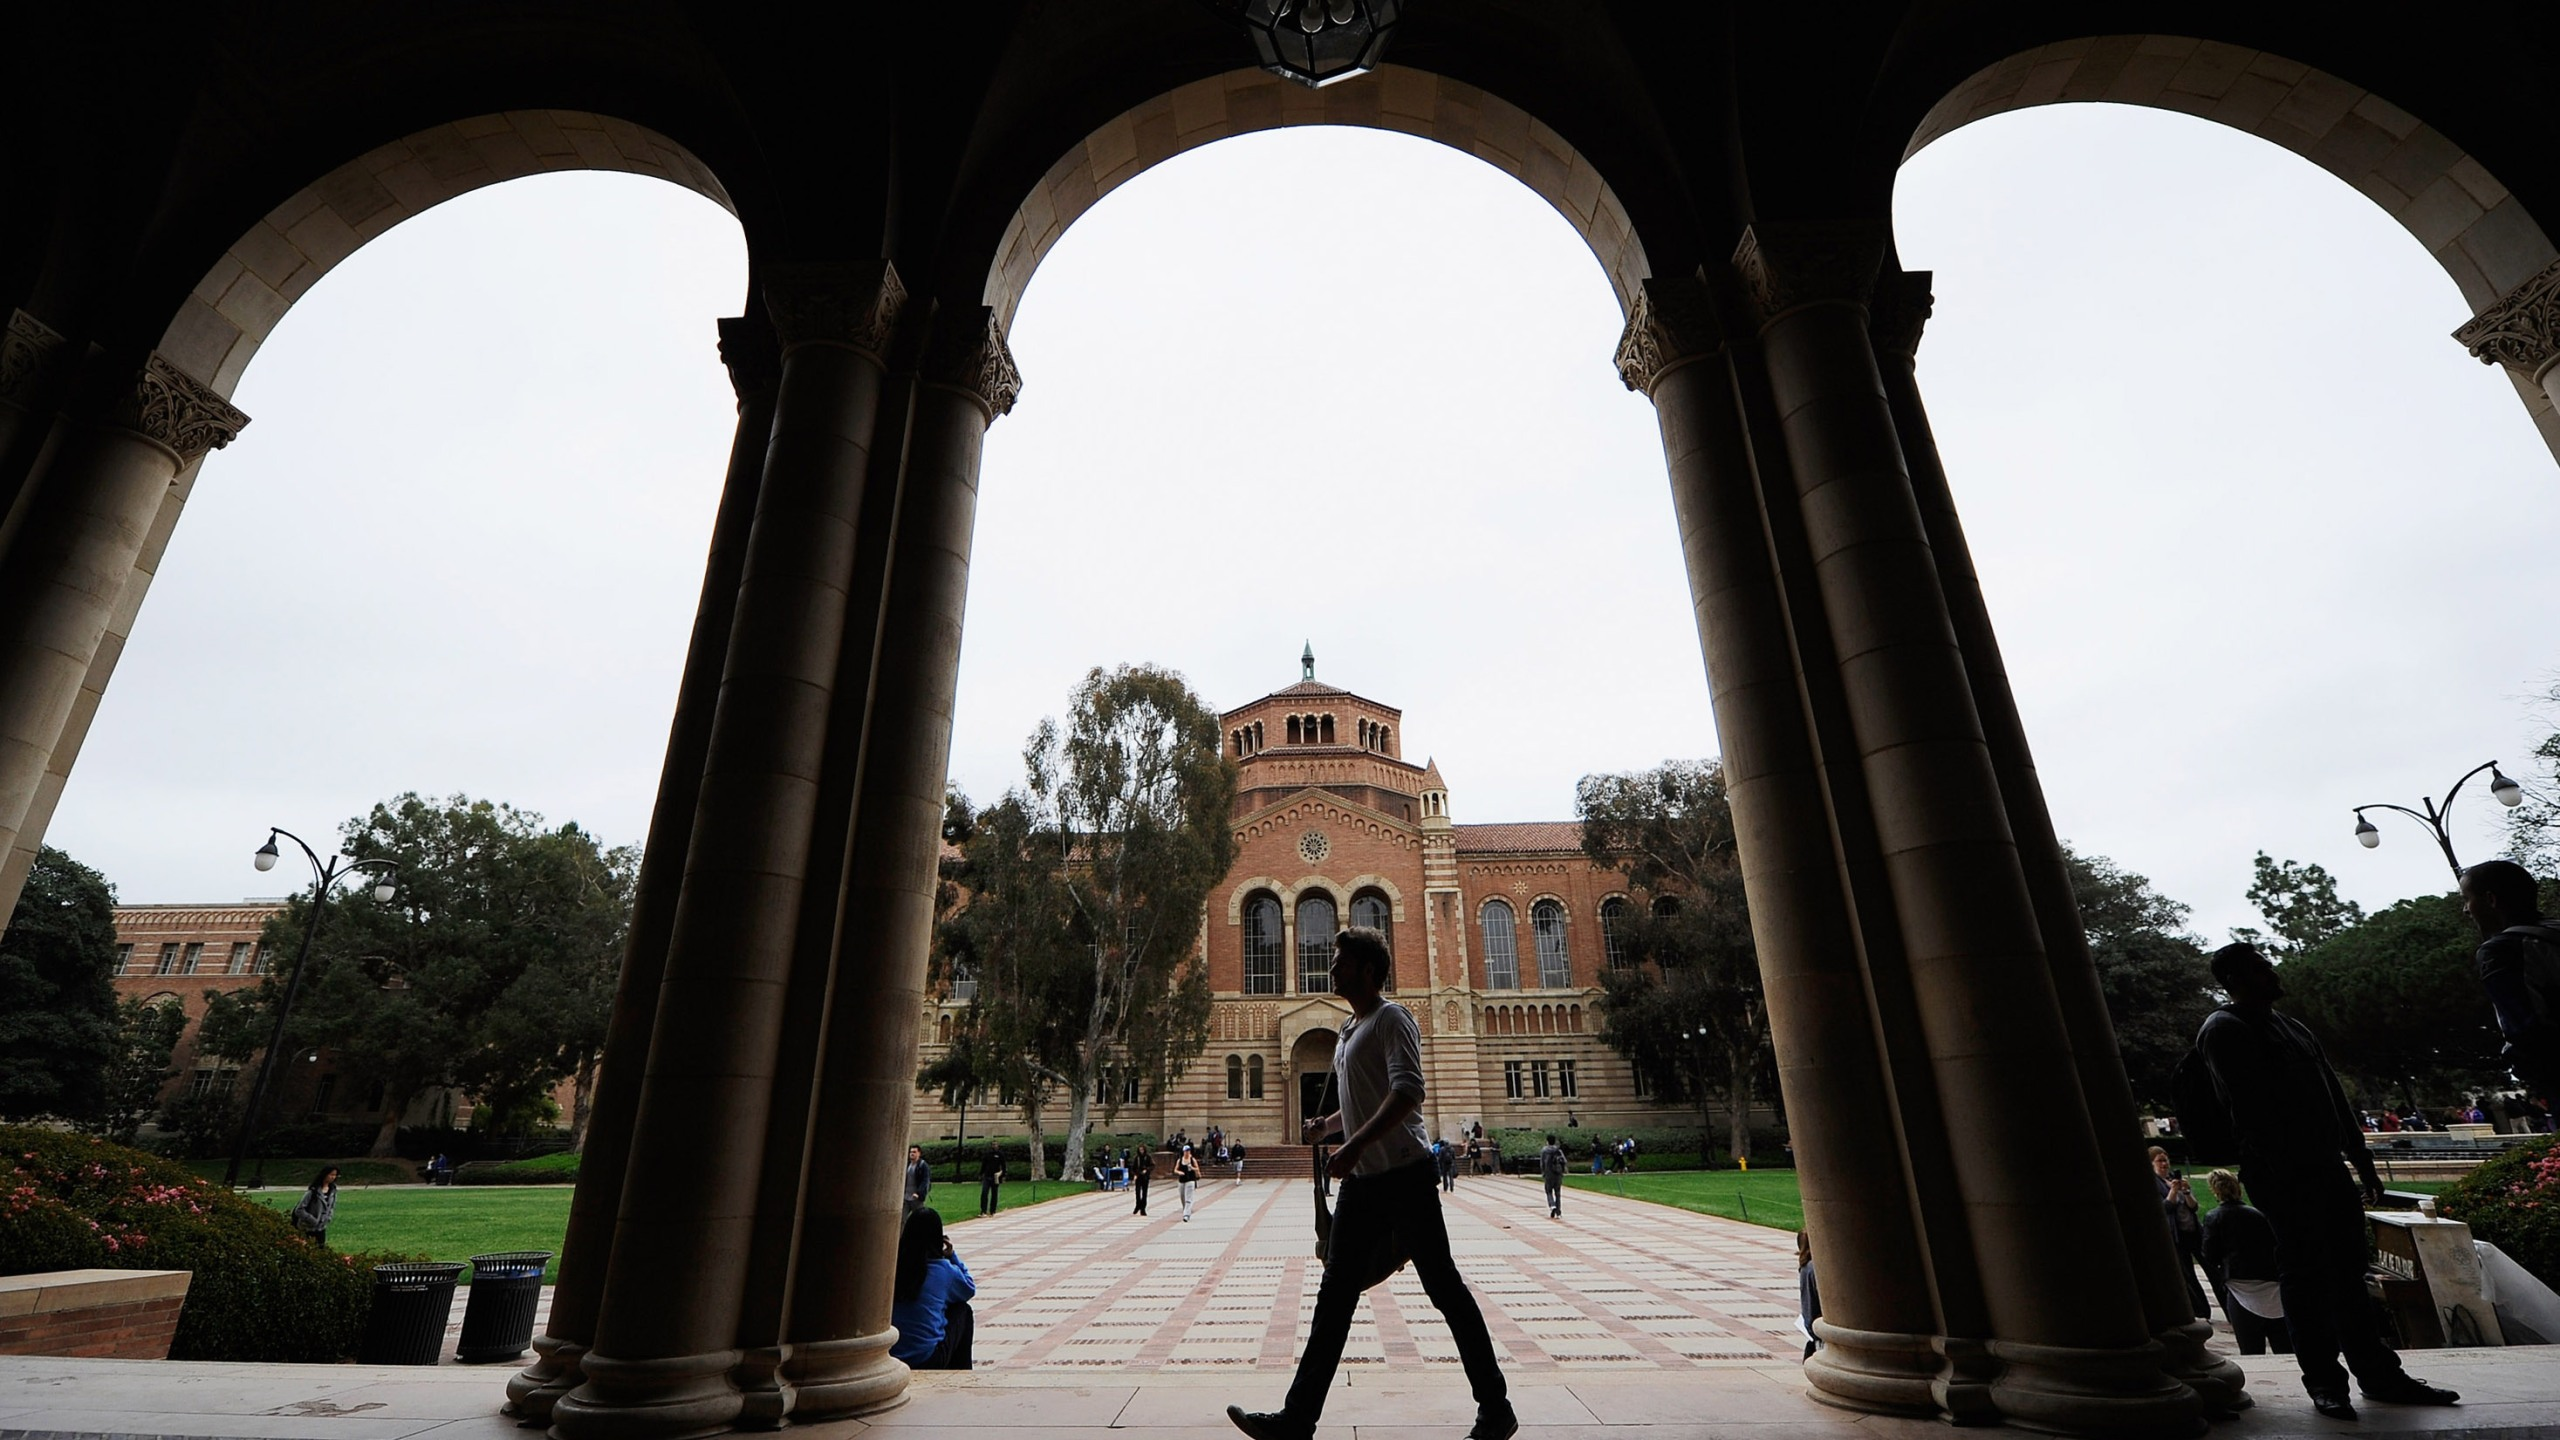 A student walks near Royce Hall on the UCLA campus on April 23, 2012, in Los Angeles. (Credit: Kevork Djansezian/Getty Images)